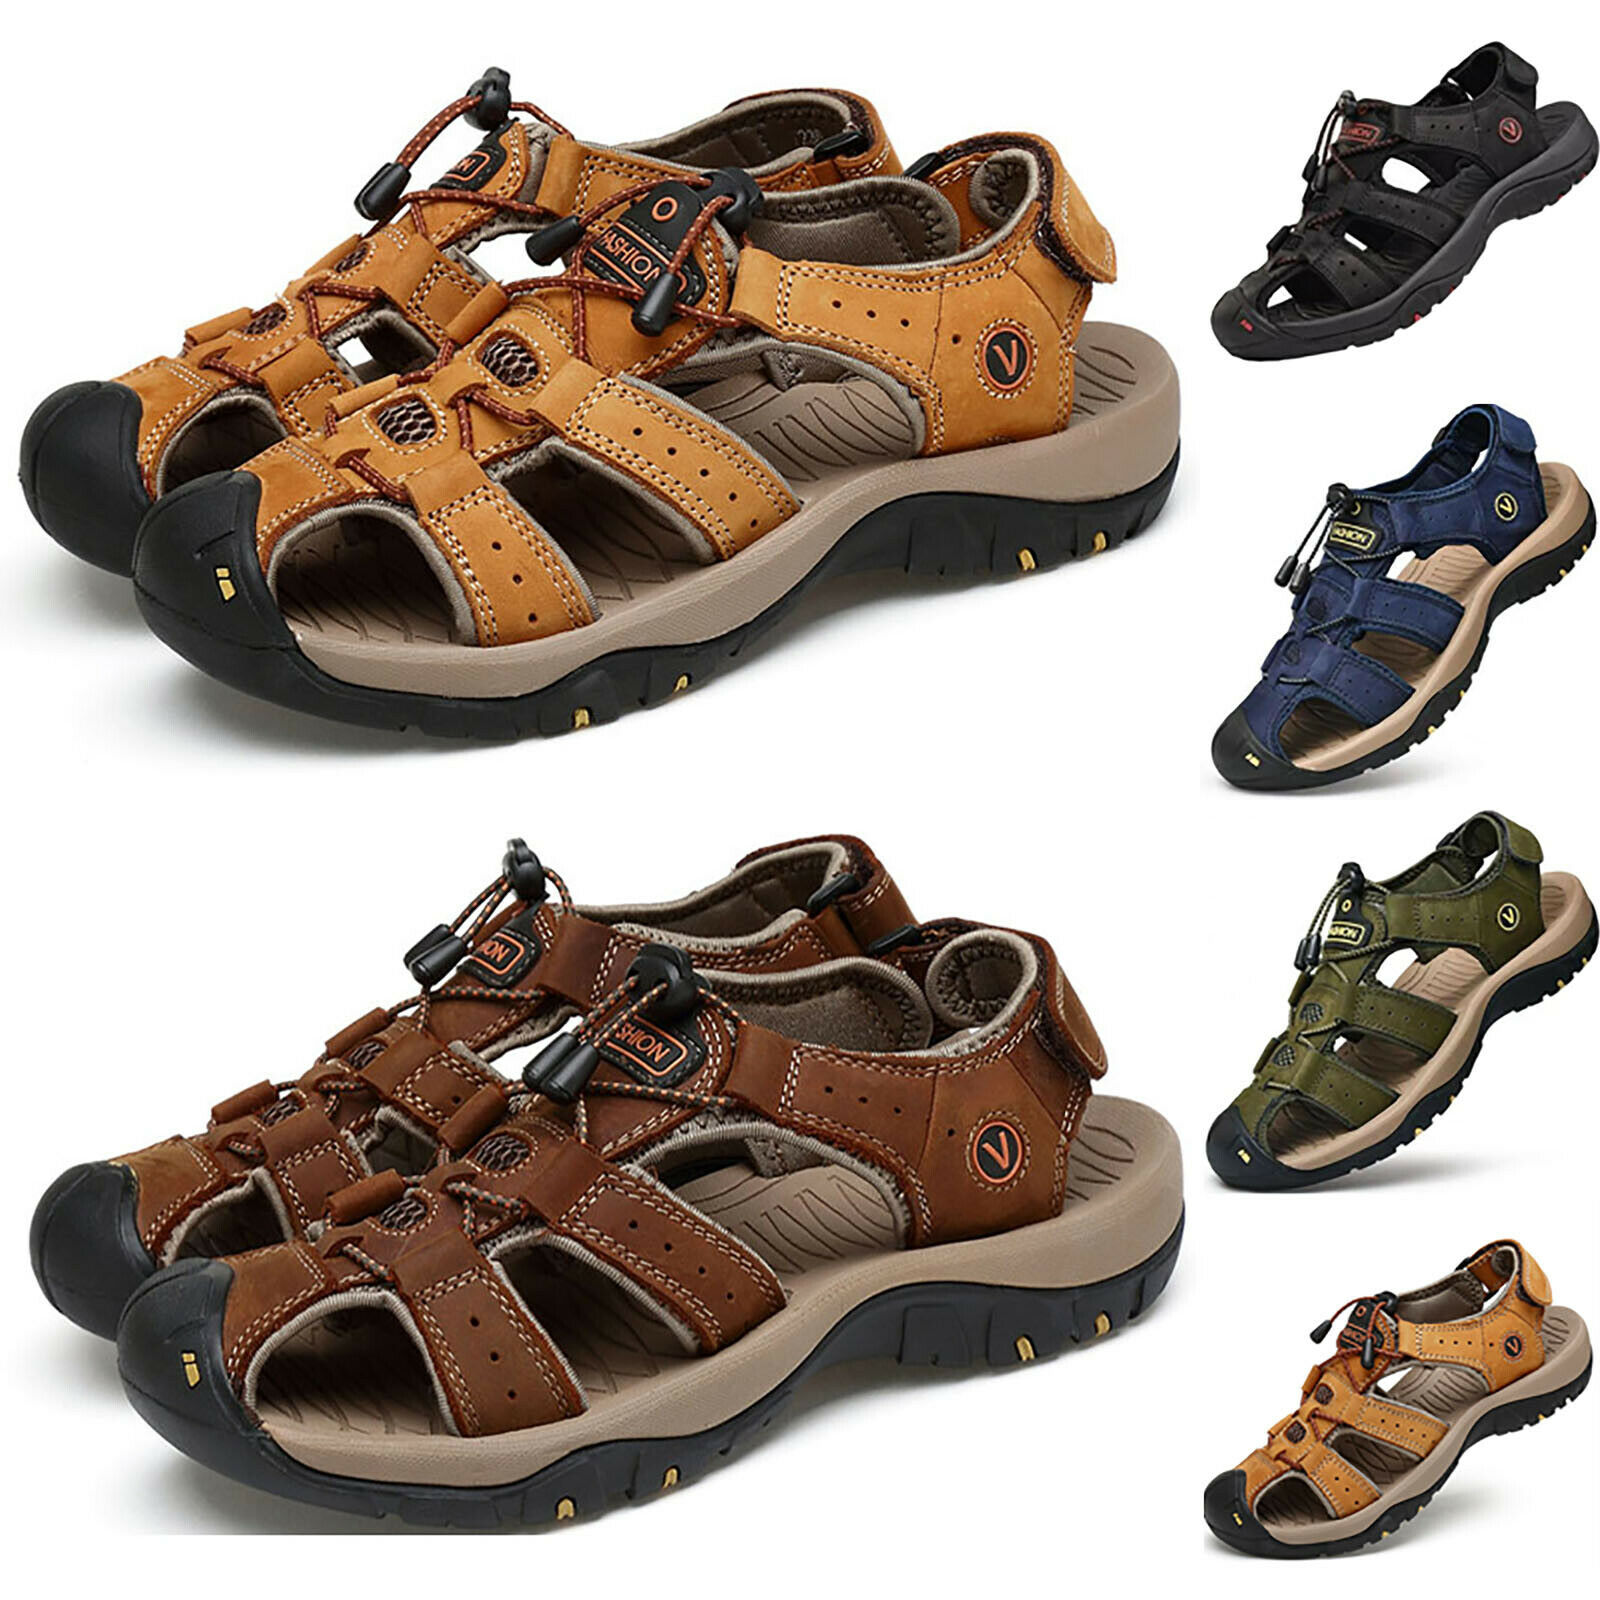 Men's Summer Hiking Leather Sandals Wading Closed Toe Fisherman Soft Beach Shoes